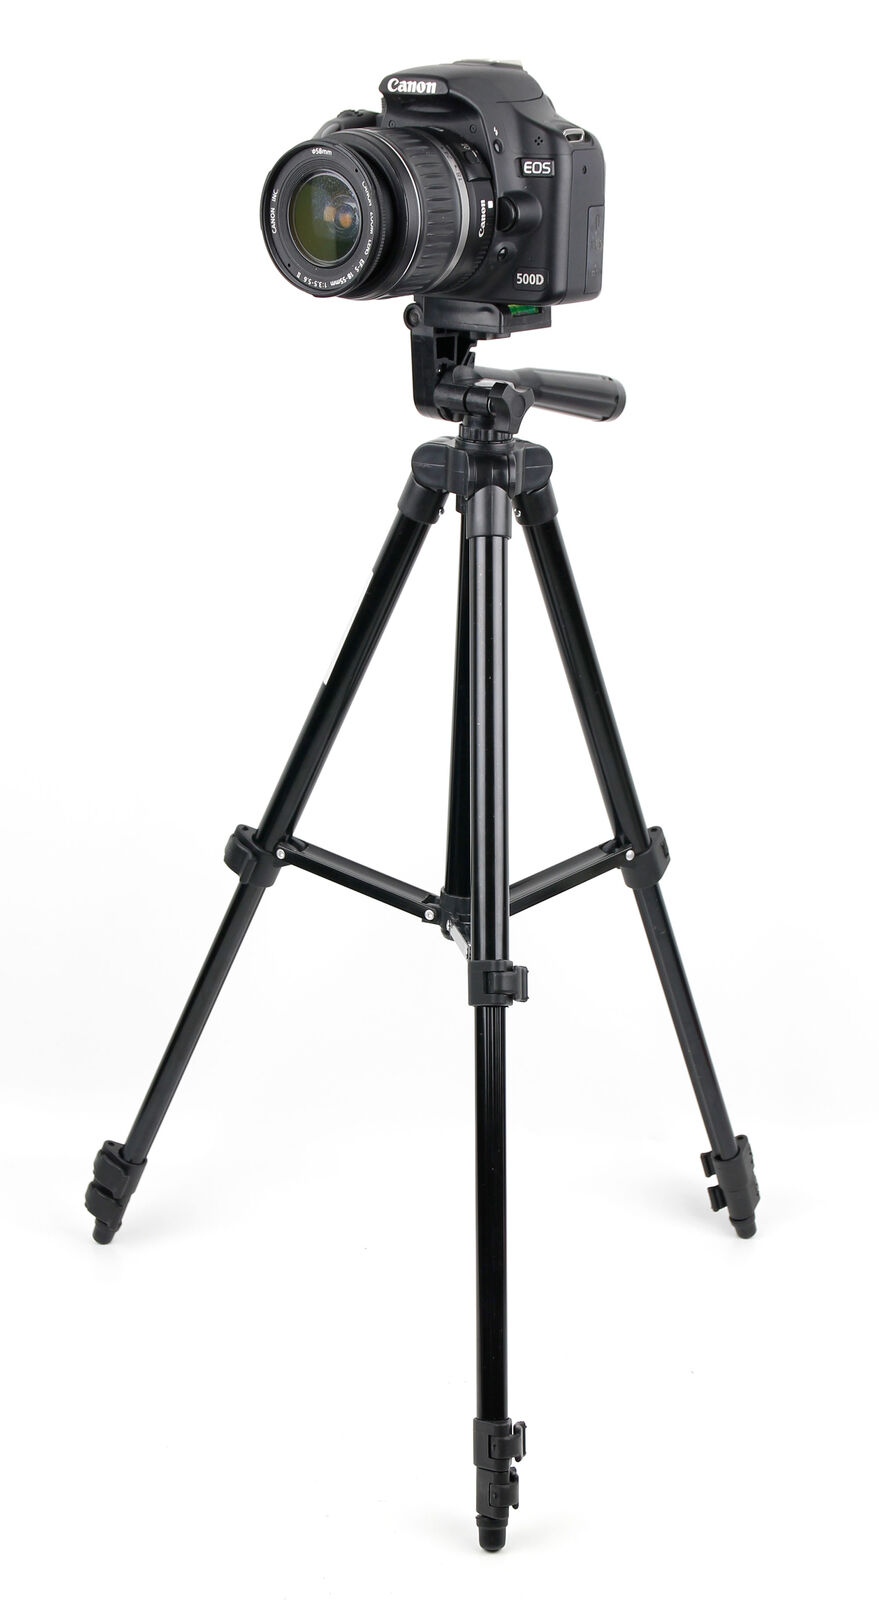 1M Extendable Tripod W/ Screw Mount for the Canon